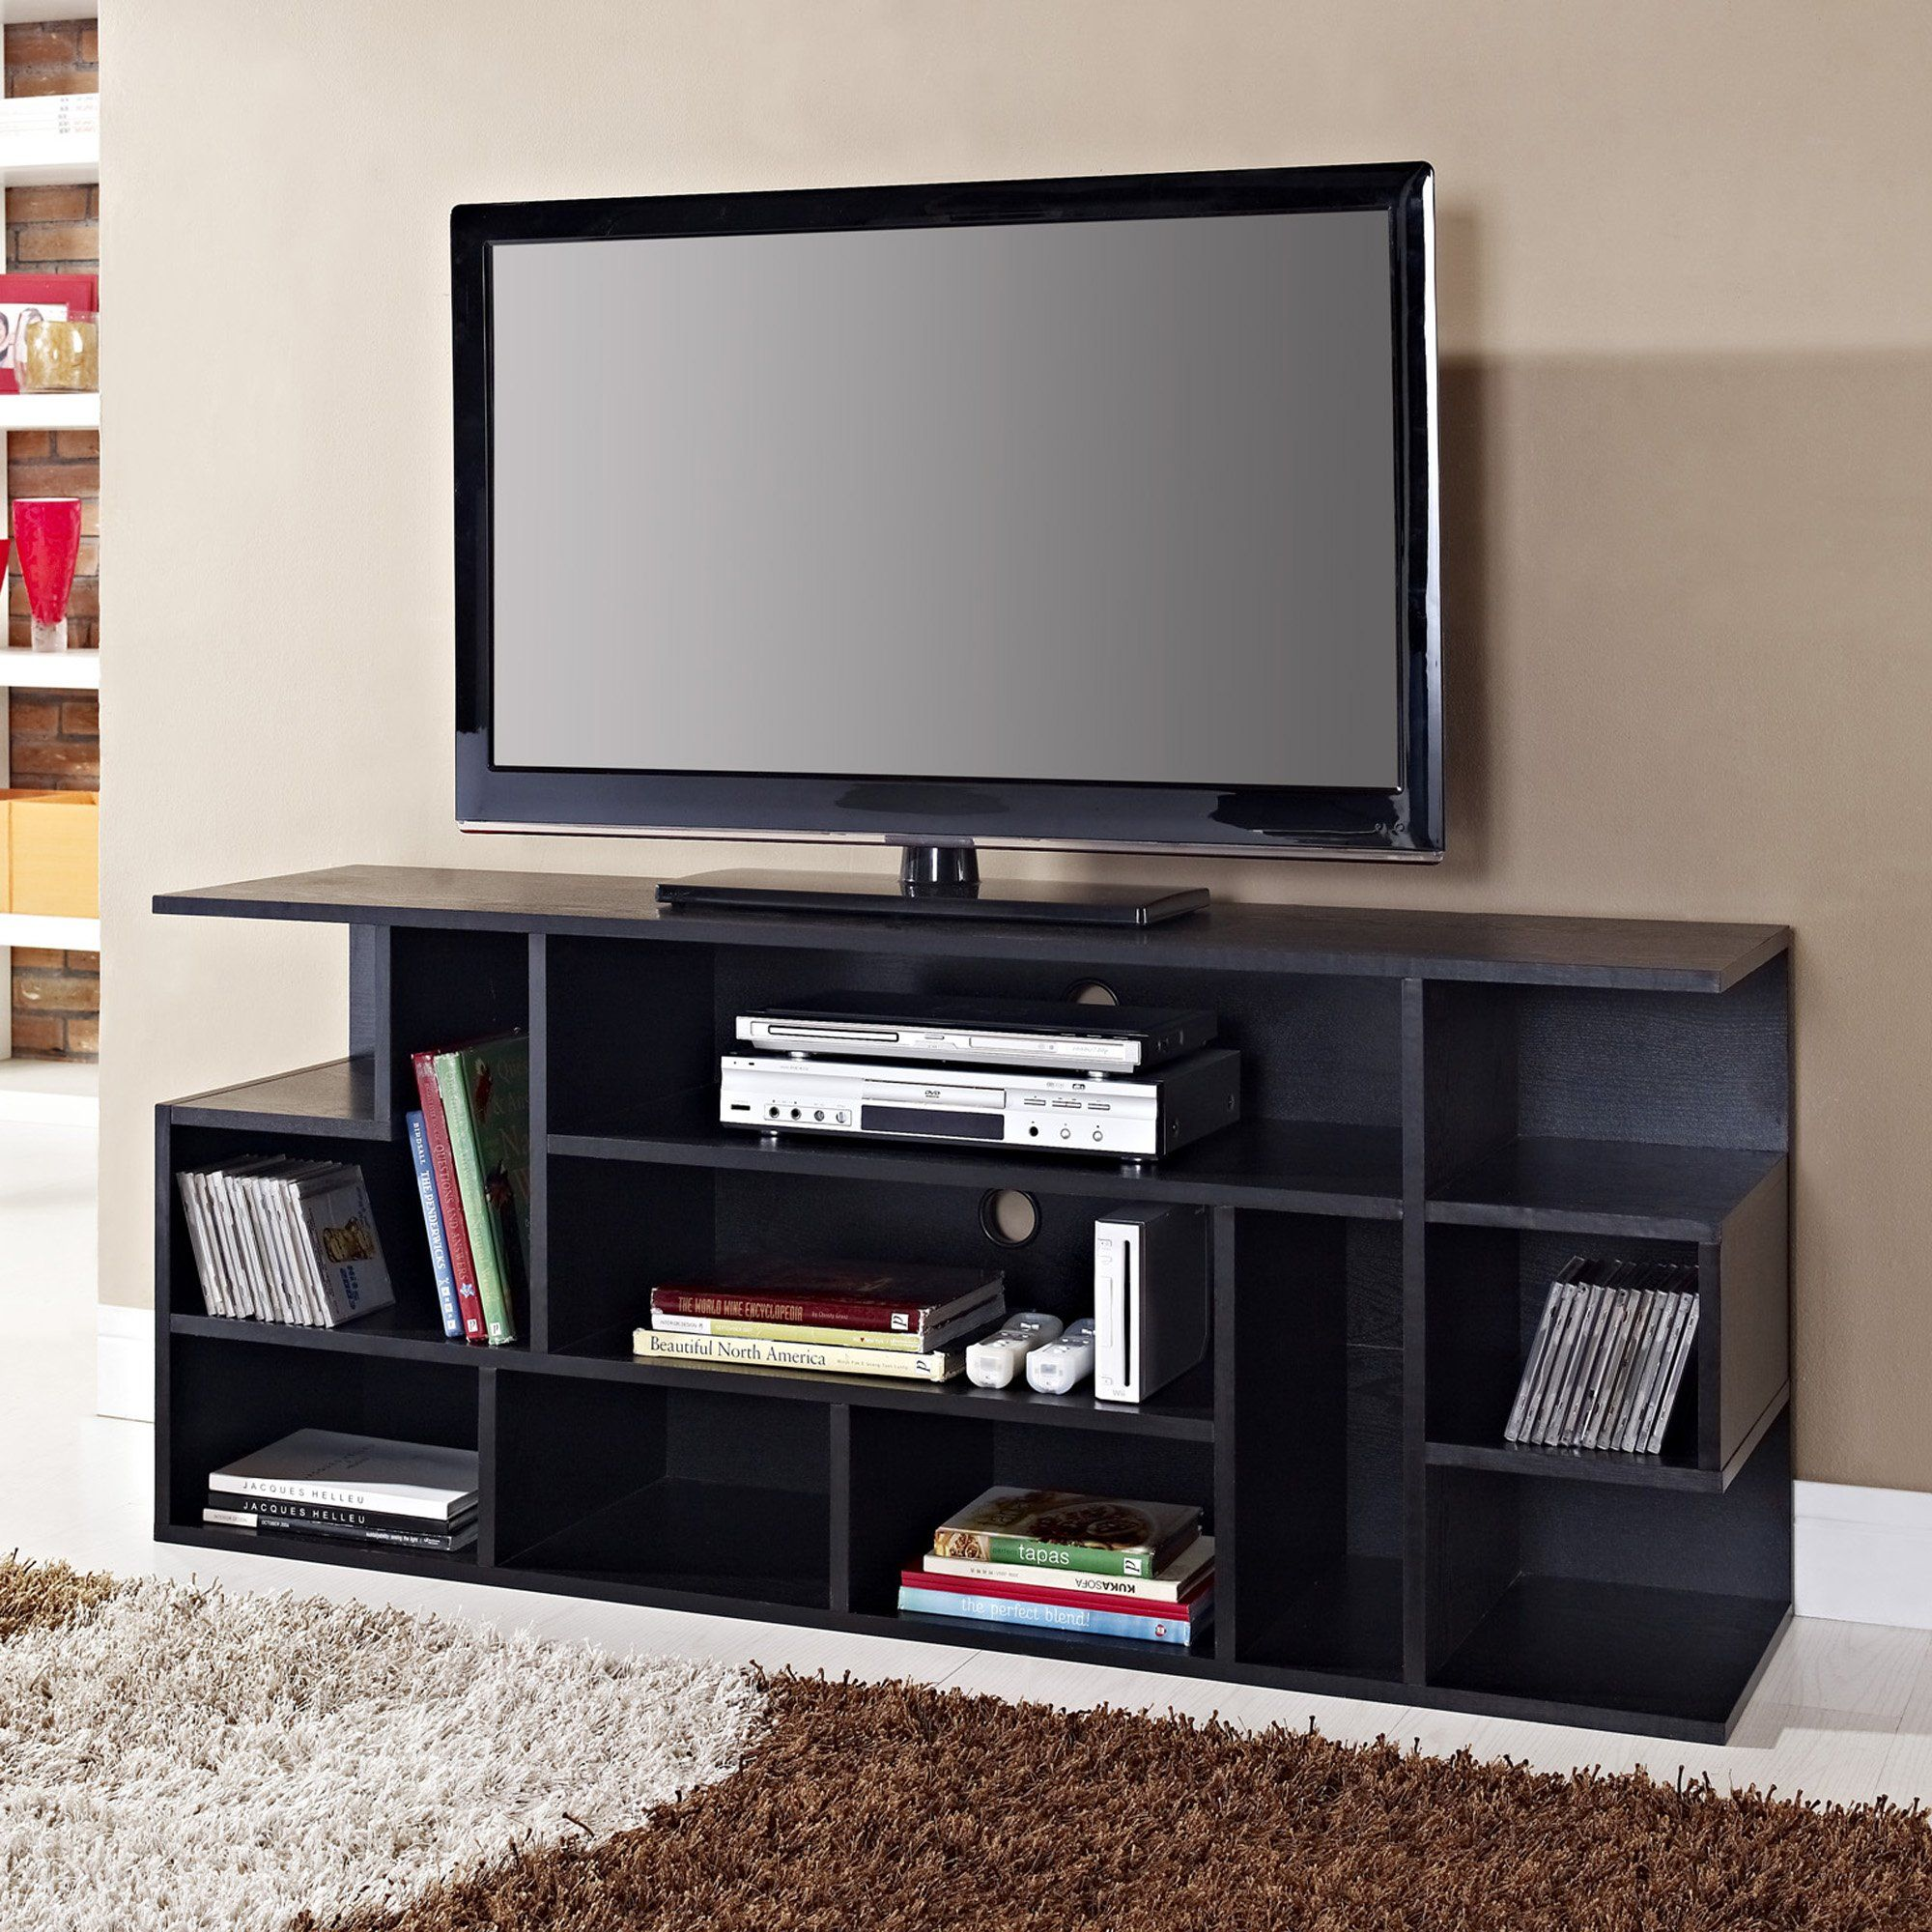 Amazon Com We Furniture Wood Modern Style Tv Stand 60 Inch Black Television Stands Tv Stand Wood Tv Stand With Storage Apartment Decorating On A Budget